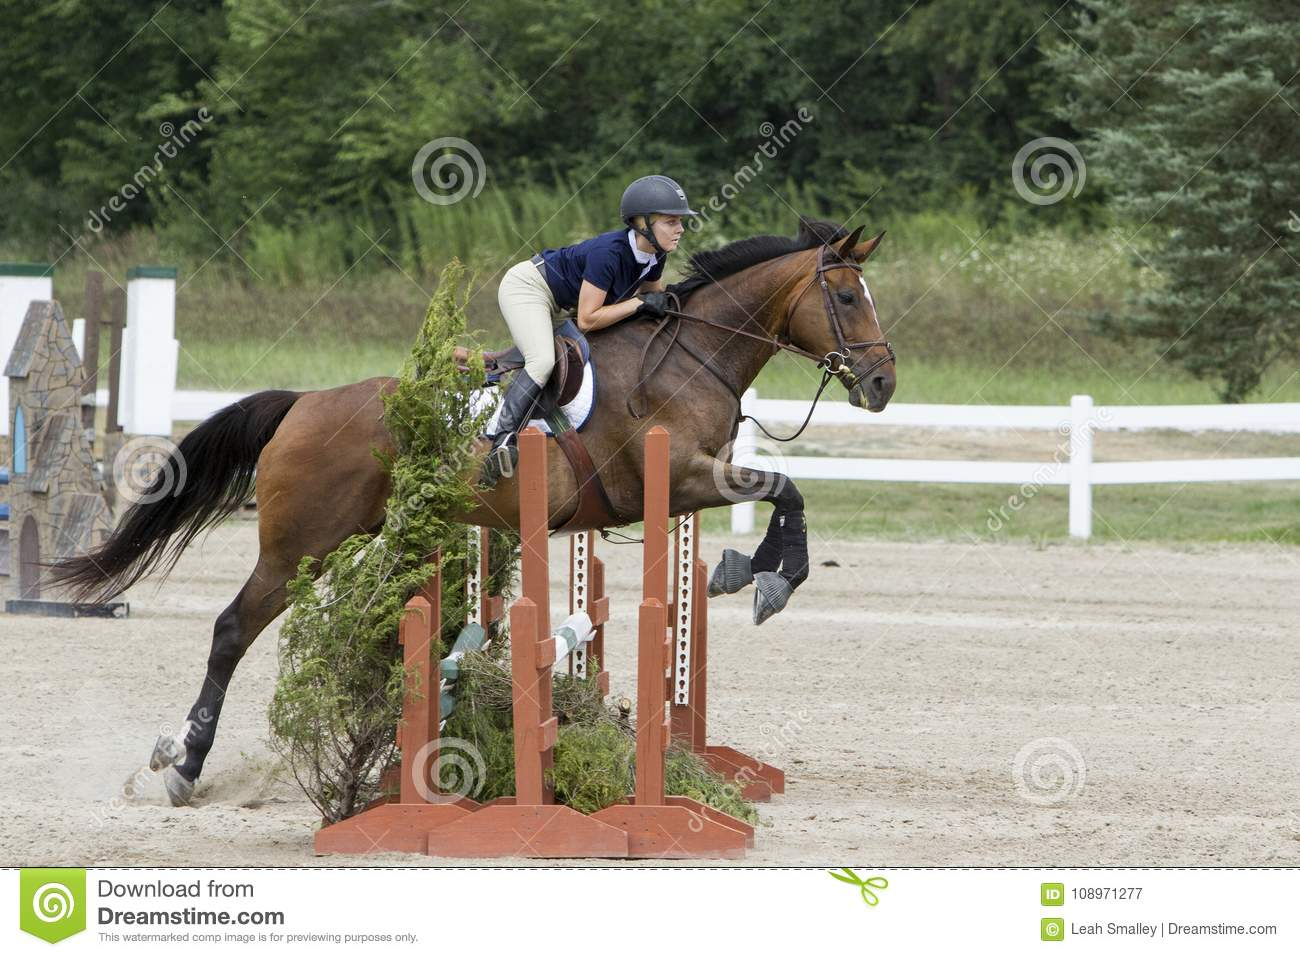 123 Oxer Jump Photos Free Royalty Free Stock Photos From Dreamstime